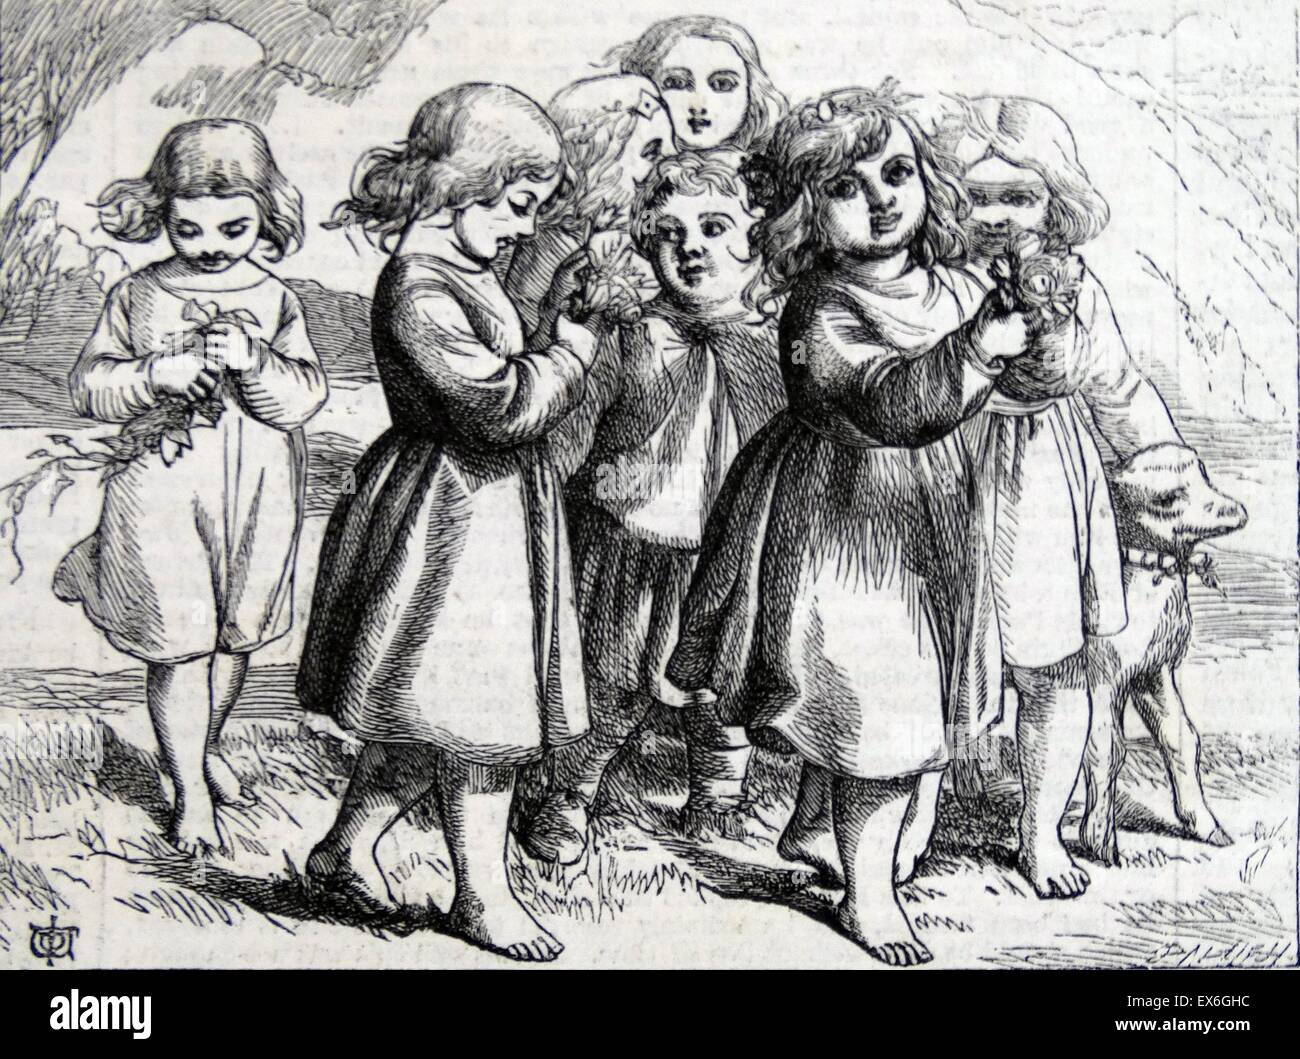 Engraving depicting young children offering flowers . Taken from the 'Pilgrim's Progress'. Dated 1860 - Stock Image